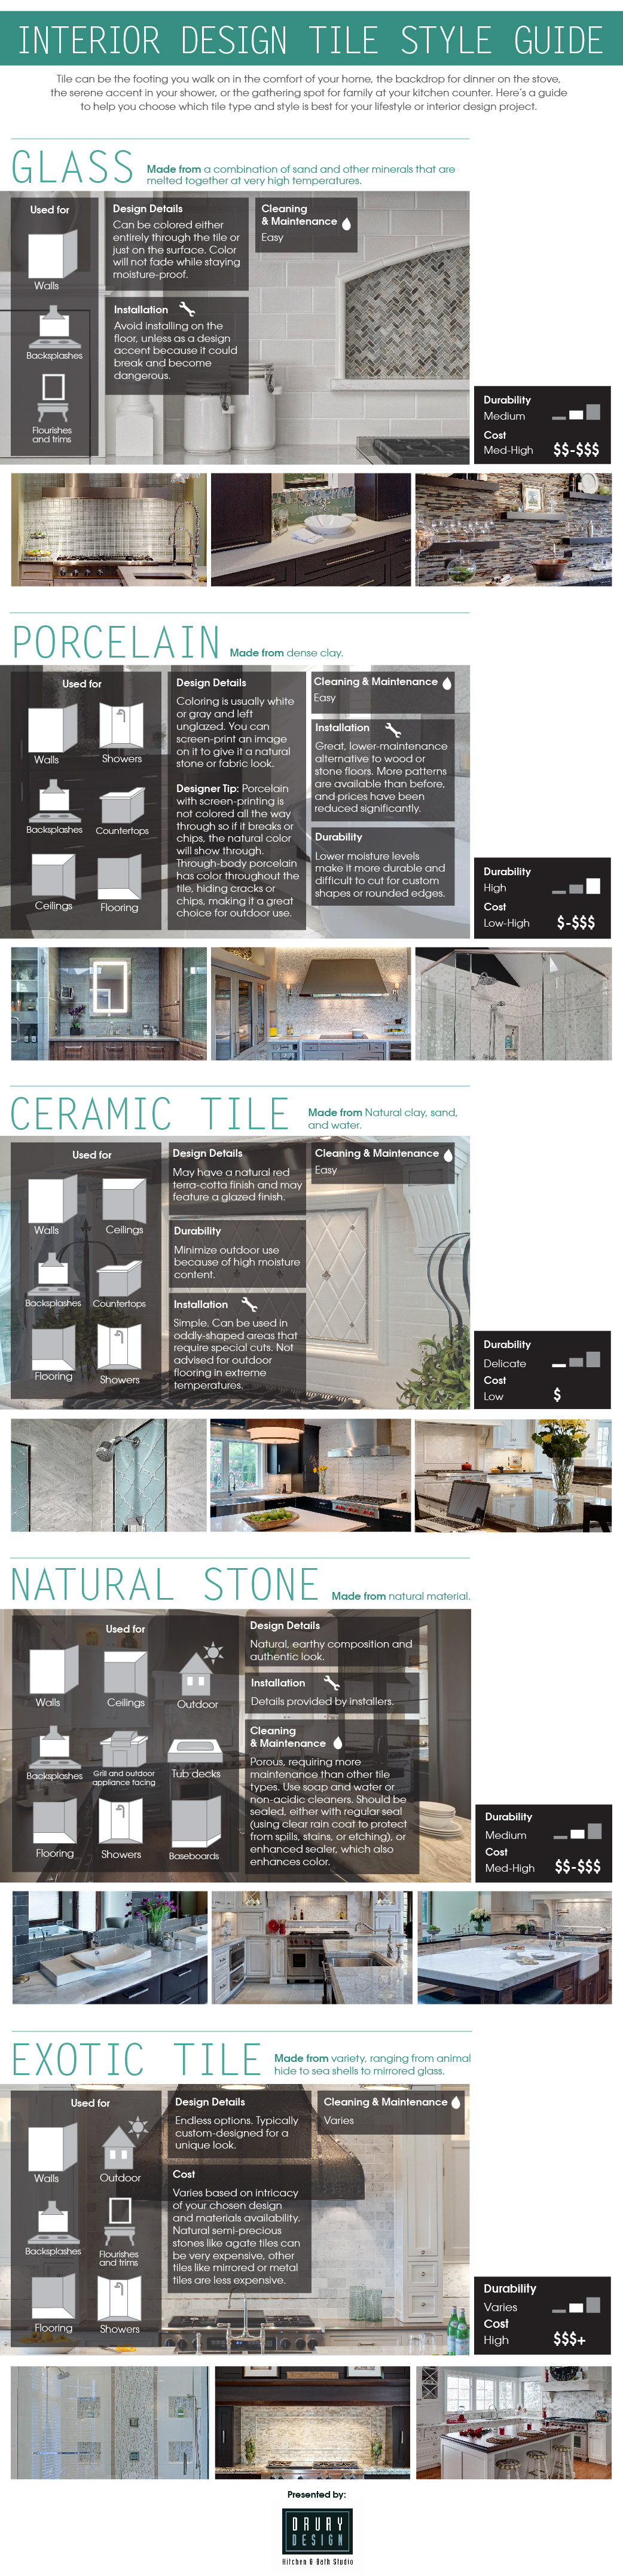 Interior Design Tile Style Guide Visual Ly